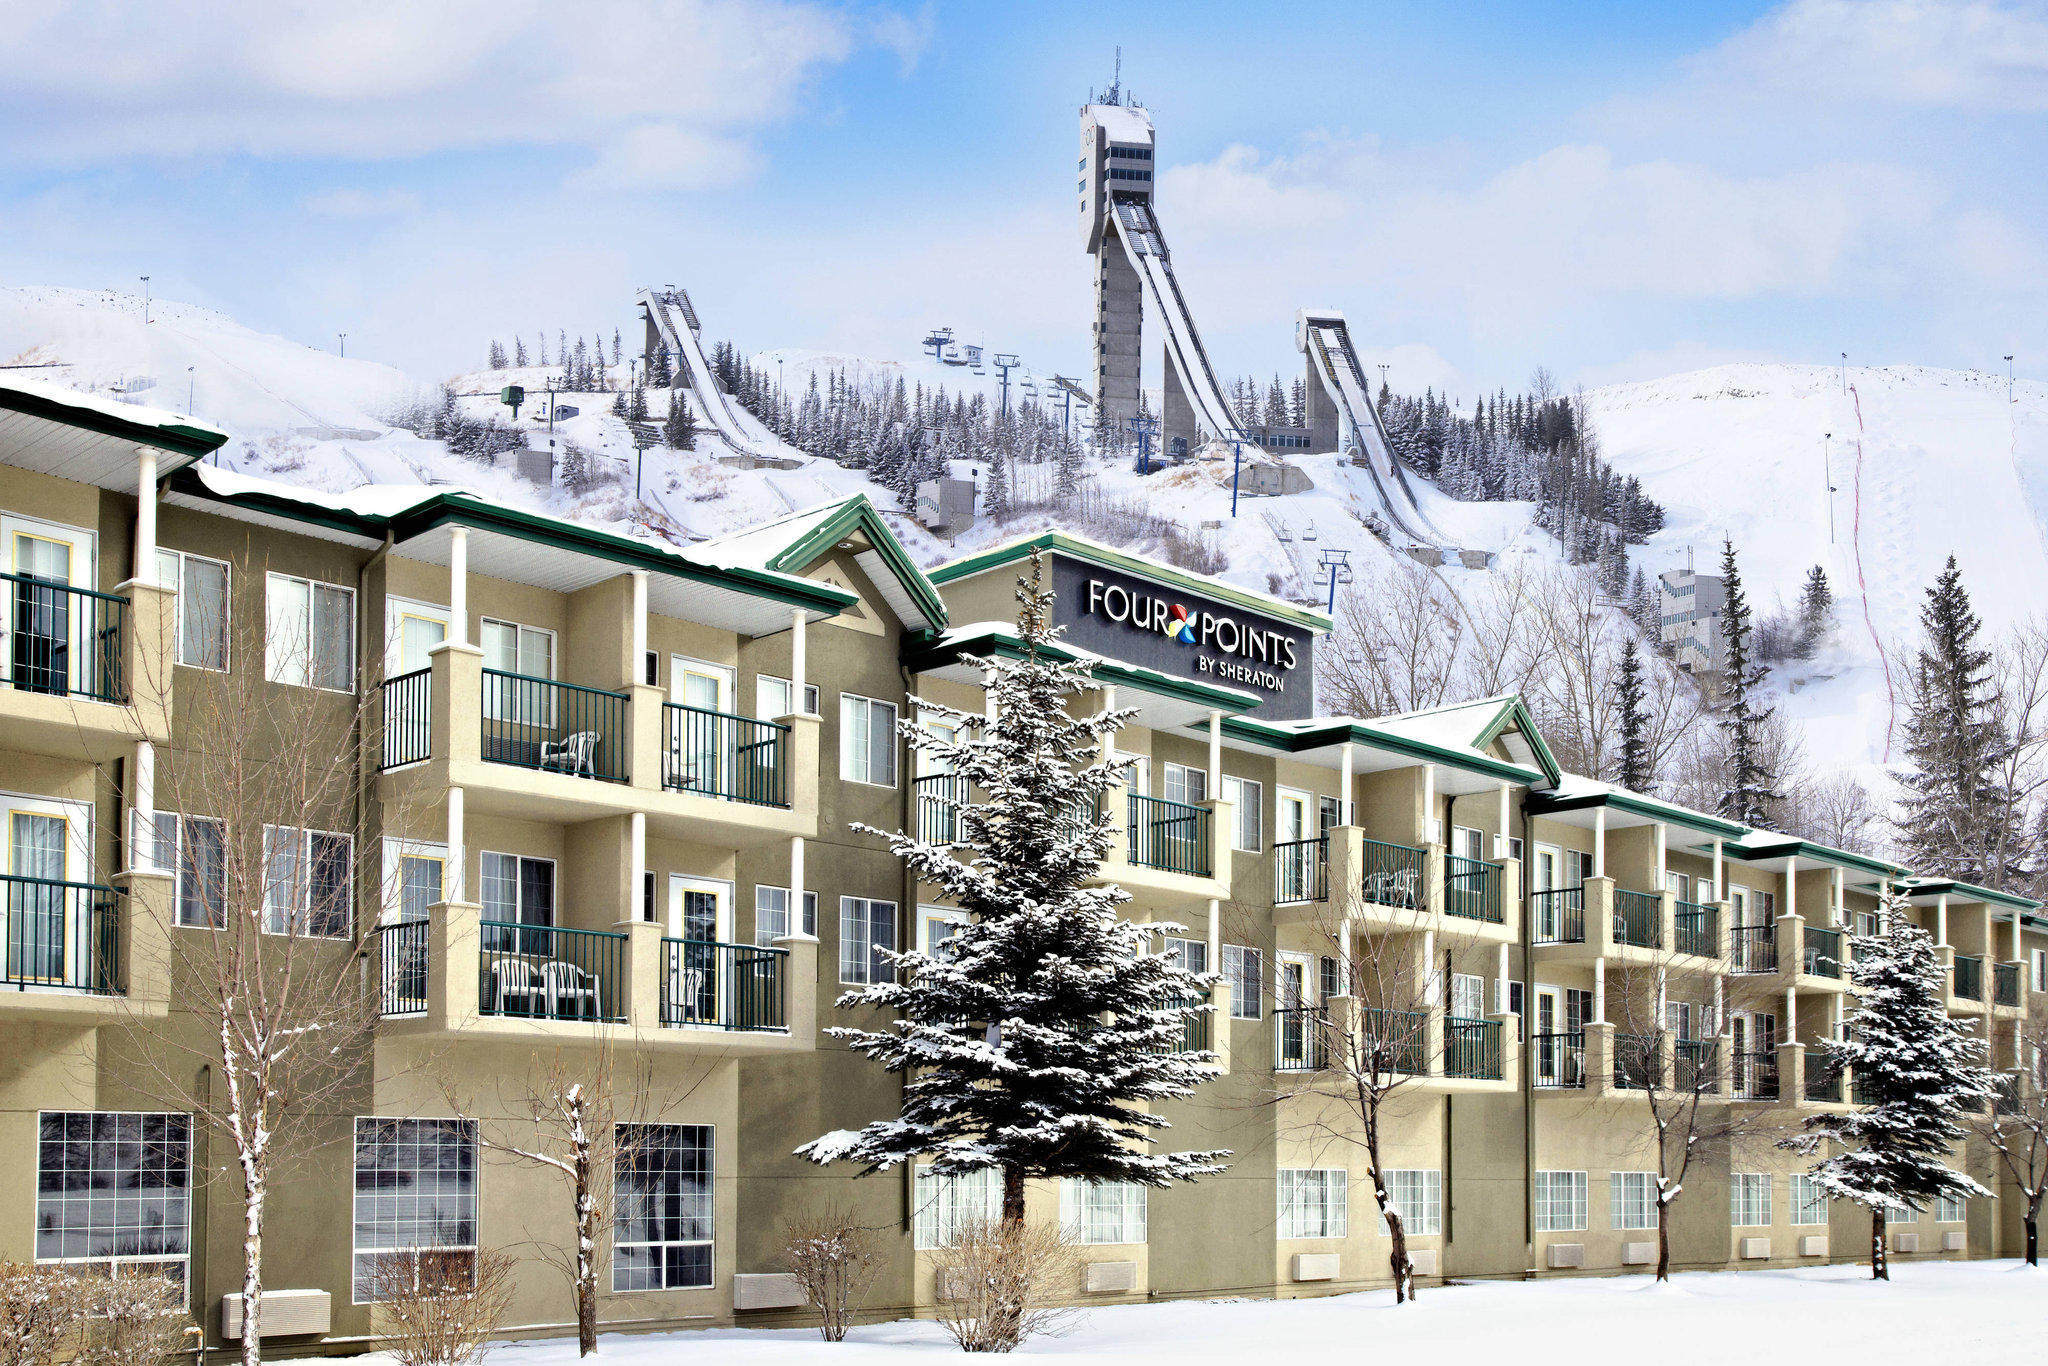 Four Points by Sheraton Hotel & Suites Calgary West - Hotels